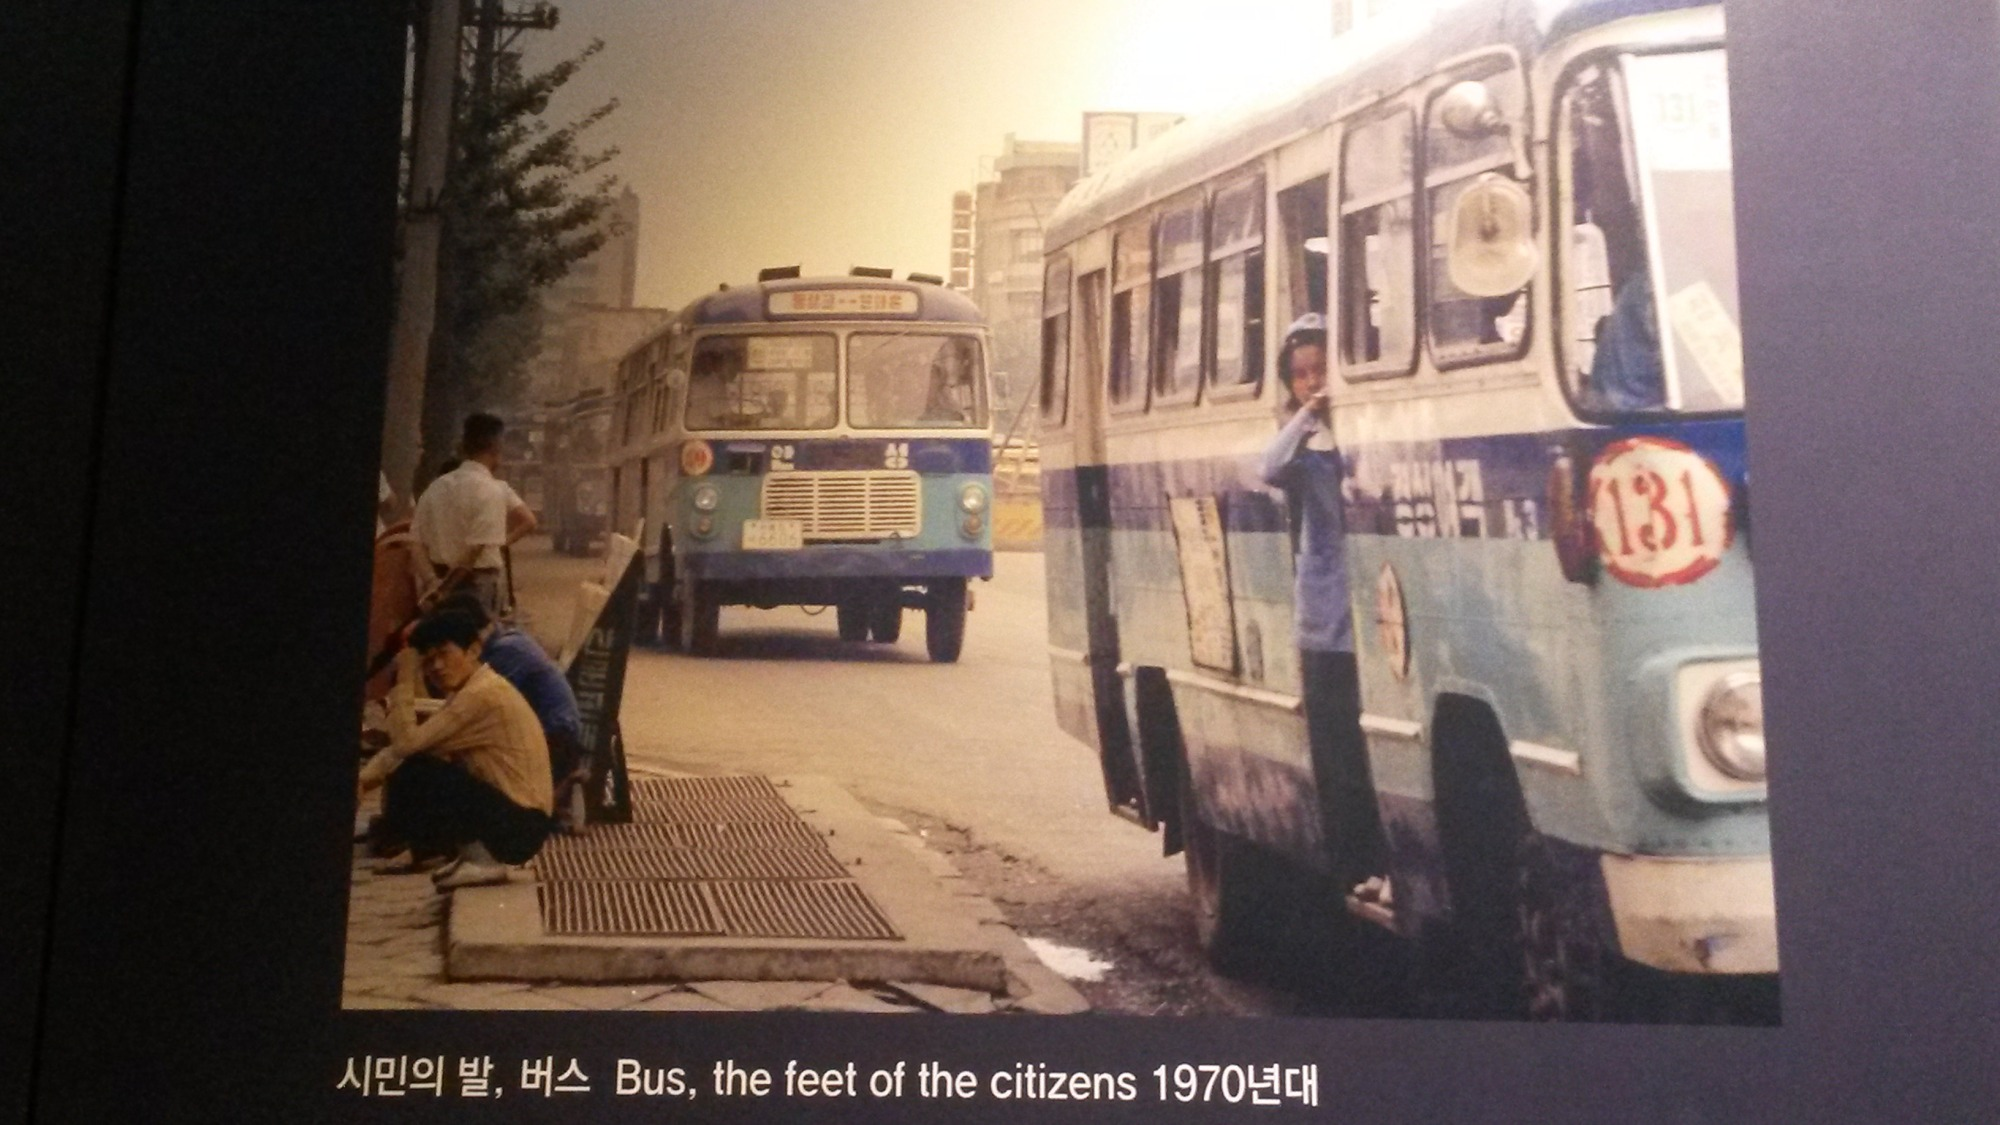 Photo in the Seoul Museum of History